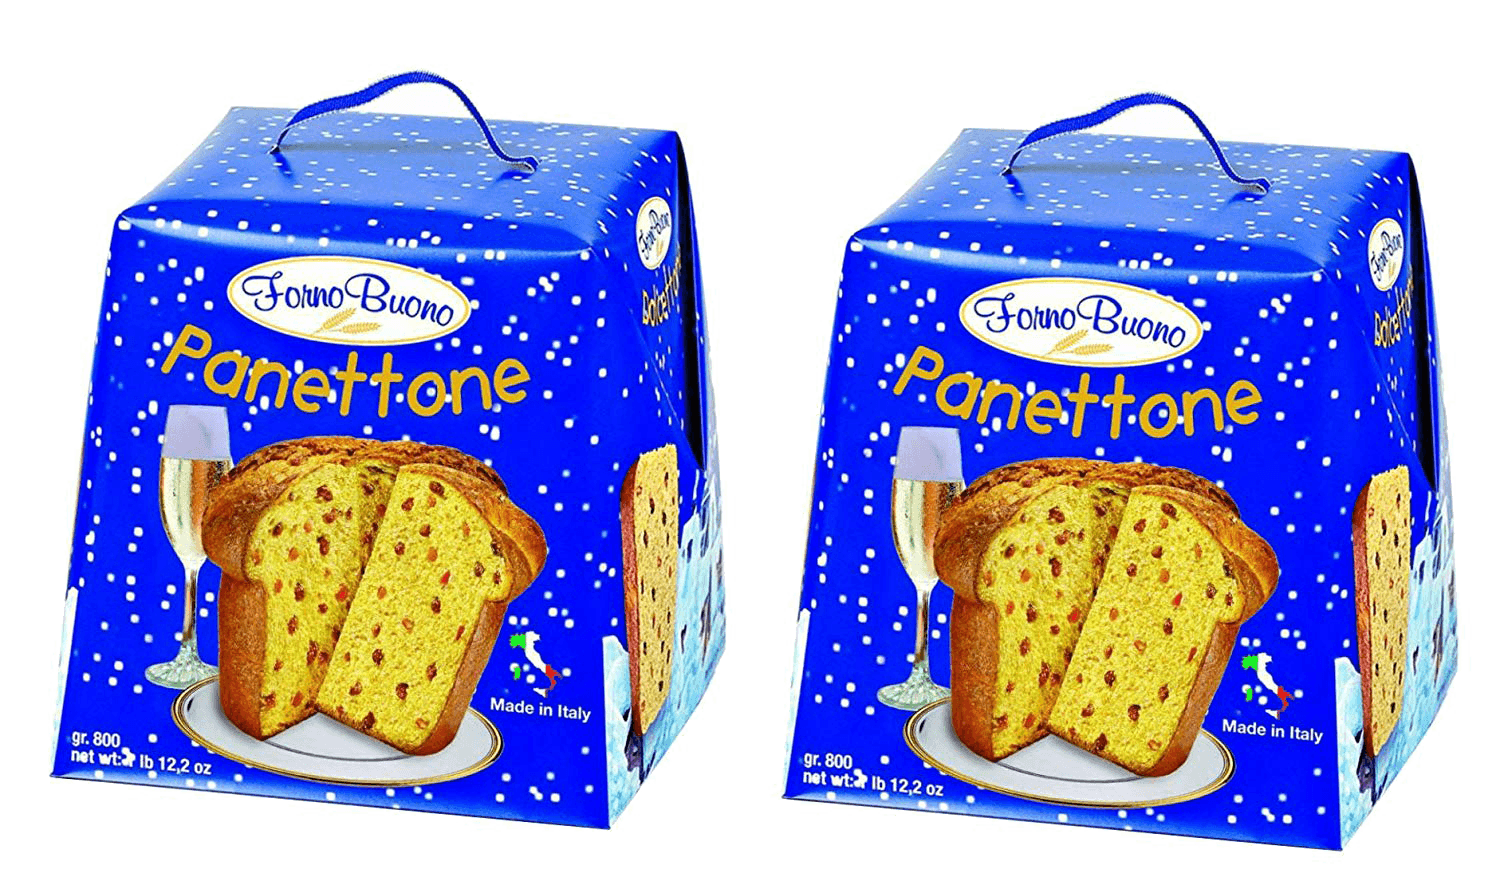 Forno Buono Panettone 2018 Holiday Season - 2 Pack - 1 Pound 12 Ounces Each